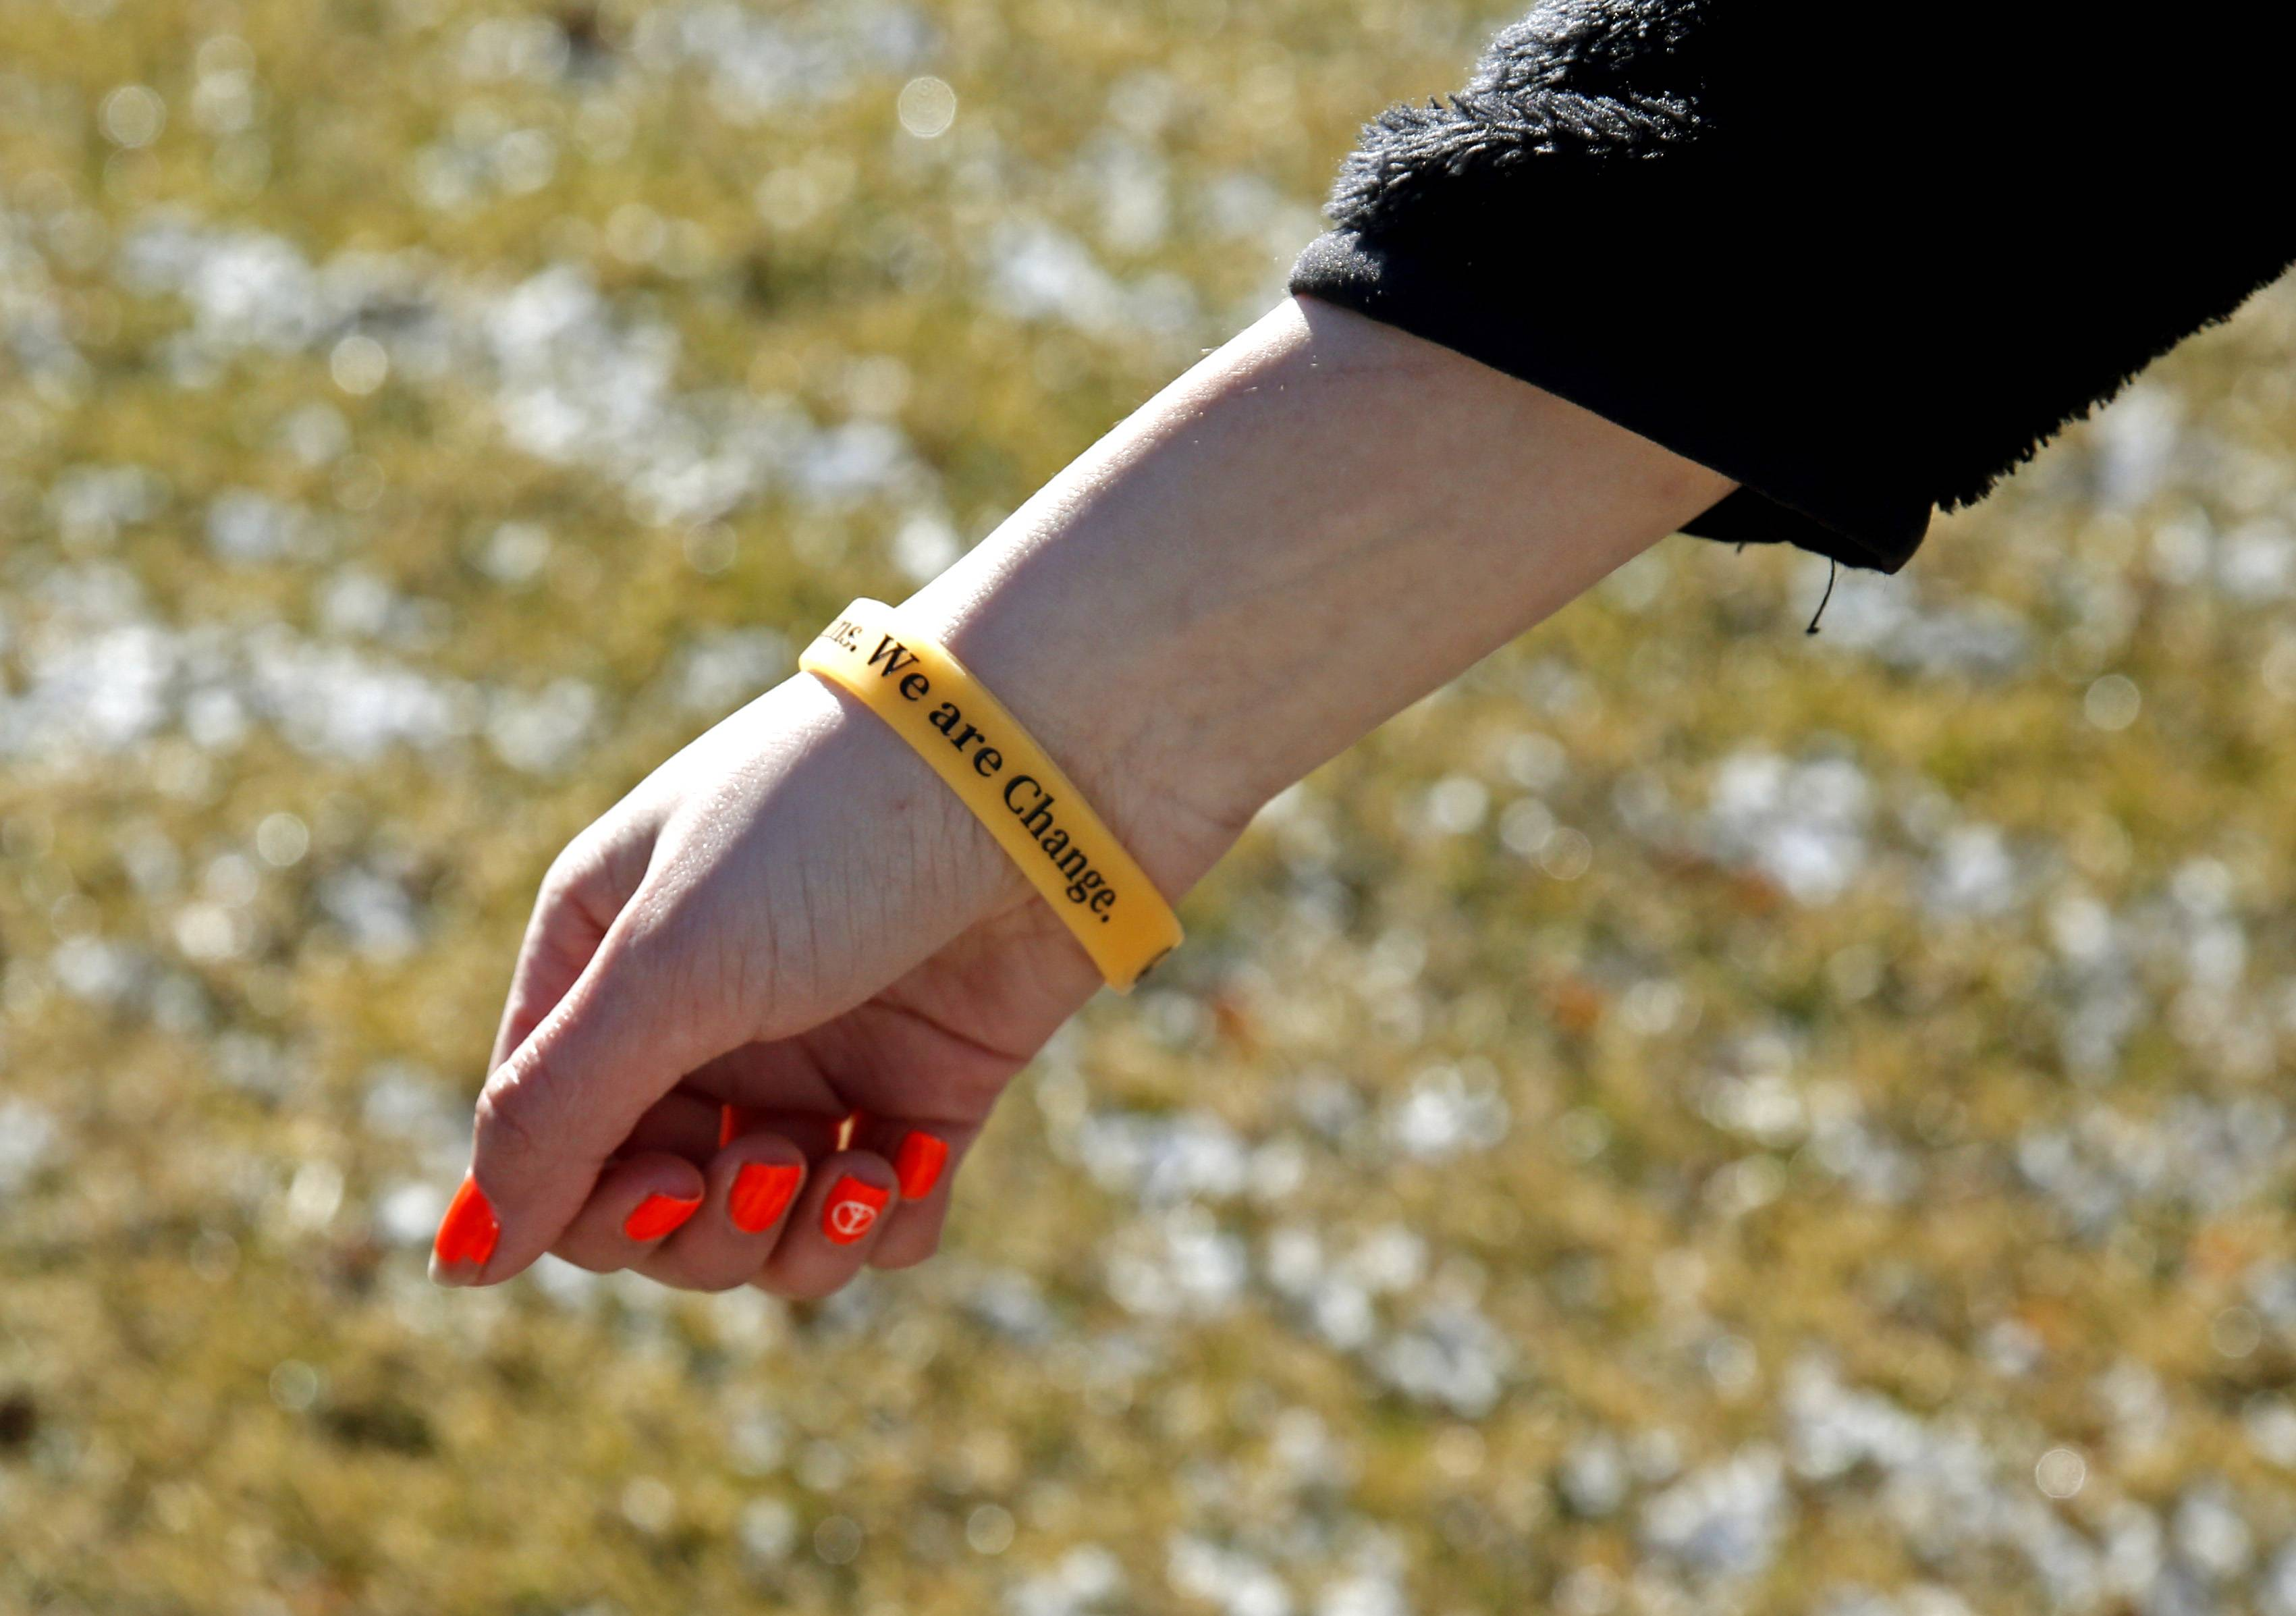 A Neuqua Valley High School senior shows her solidarity bracelet during the Wednesday walkout by students in the suburbs and around the country to draw attention to the issue of gun violence.